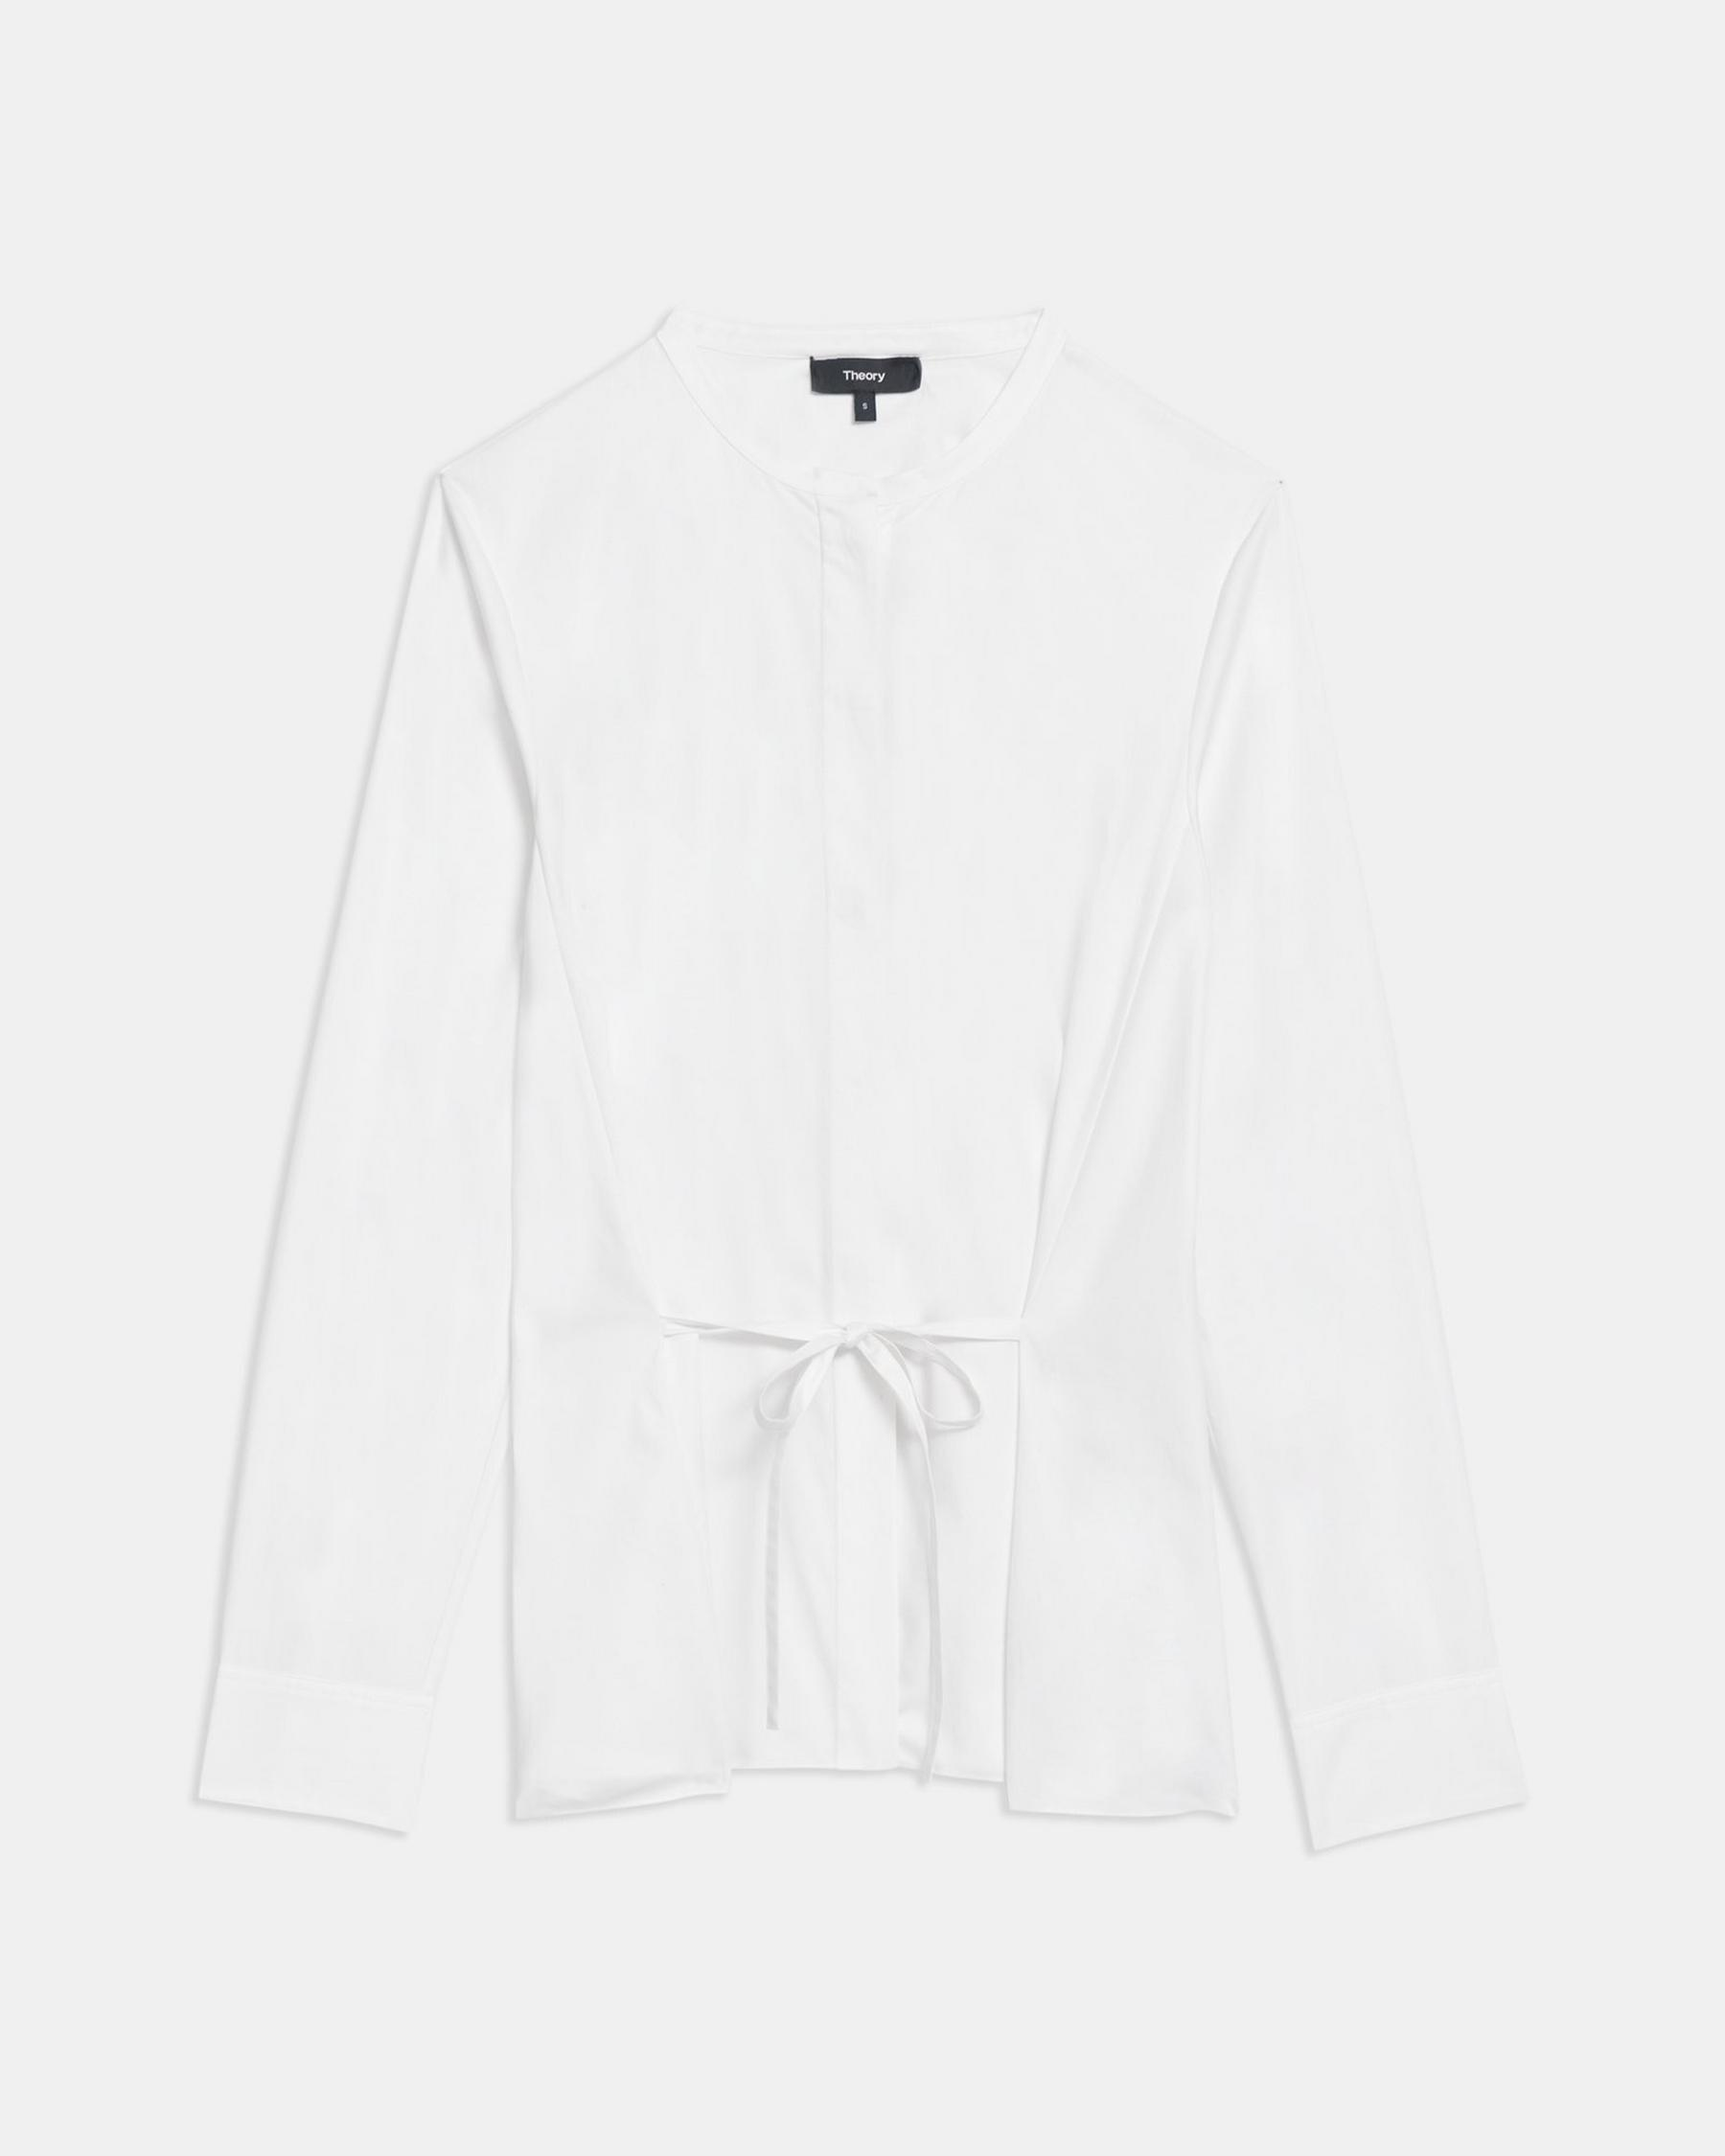 Cinched Shirt in Good Cotton 5